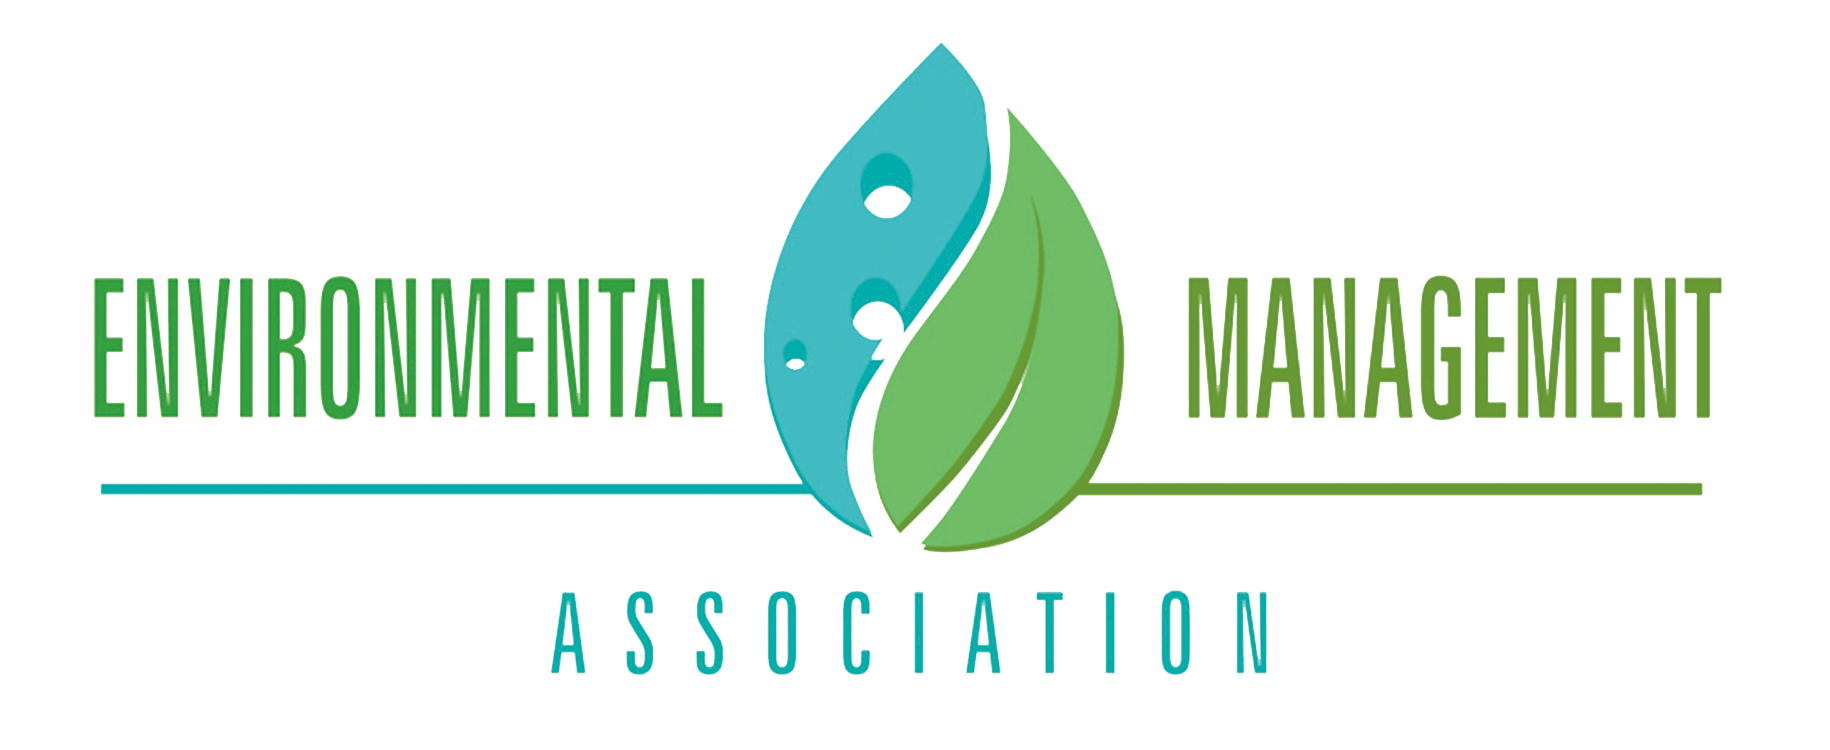 Environmental Management Association